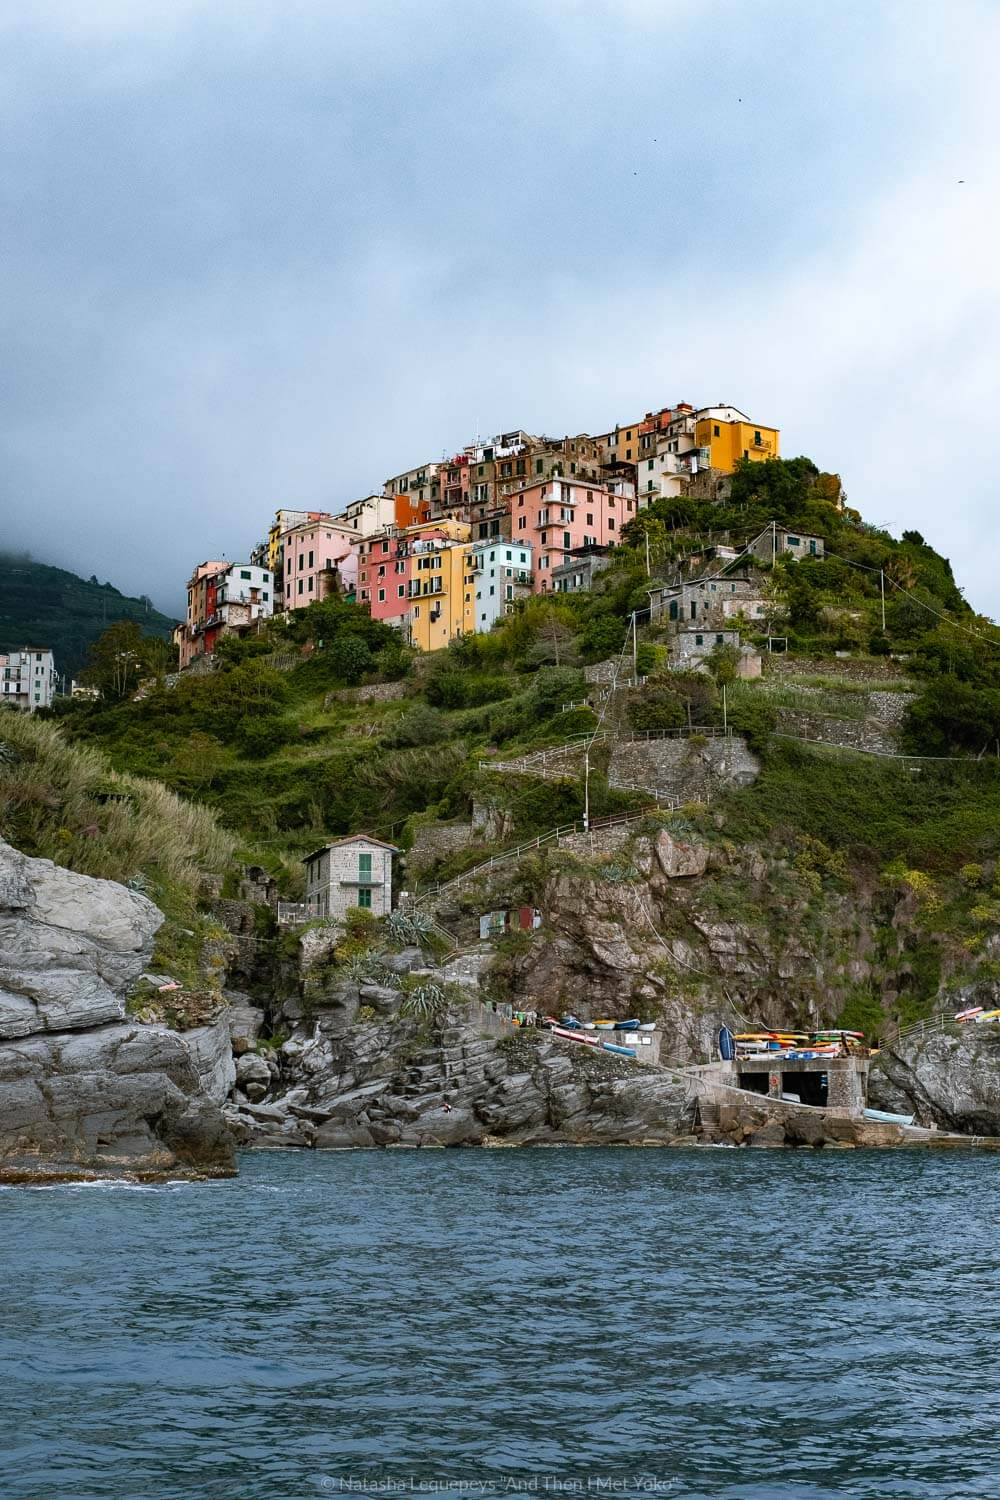 """Corniglia from the water, Cinque Terre. Travel photography and guide by © Natasha Lequepeys for """"And Then I Met Yoko"""". #cinqueterre #italy #travelphotography"""